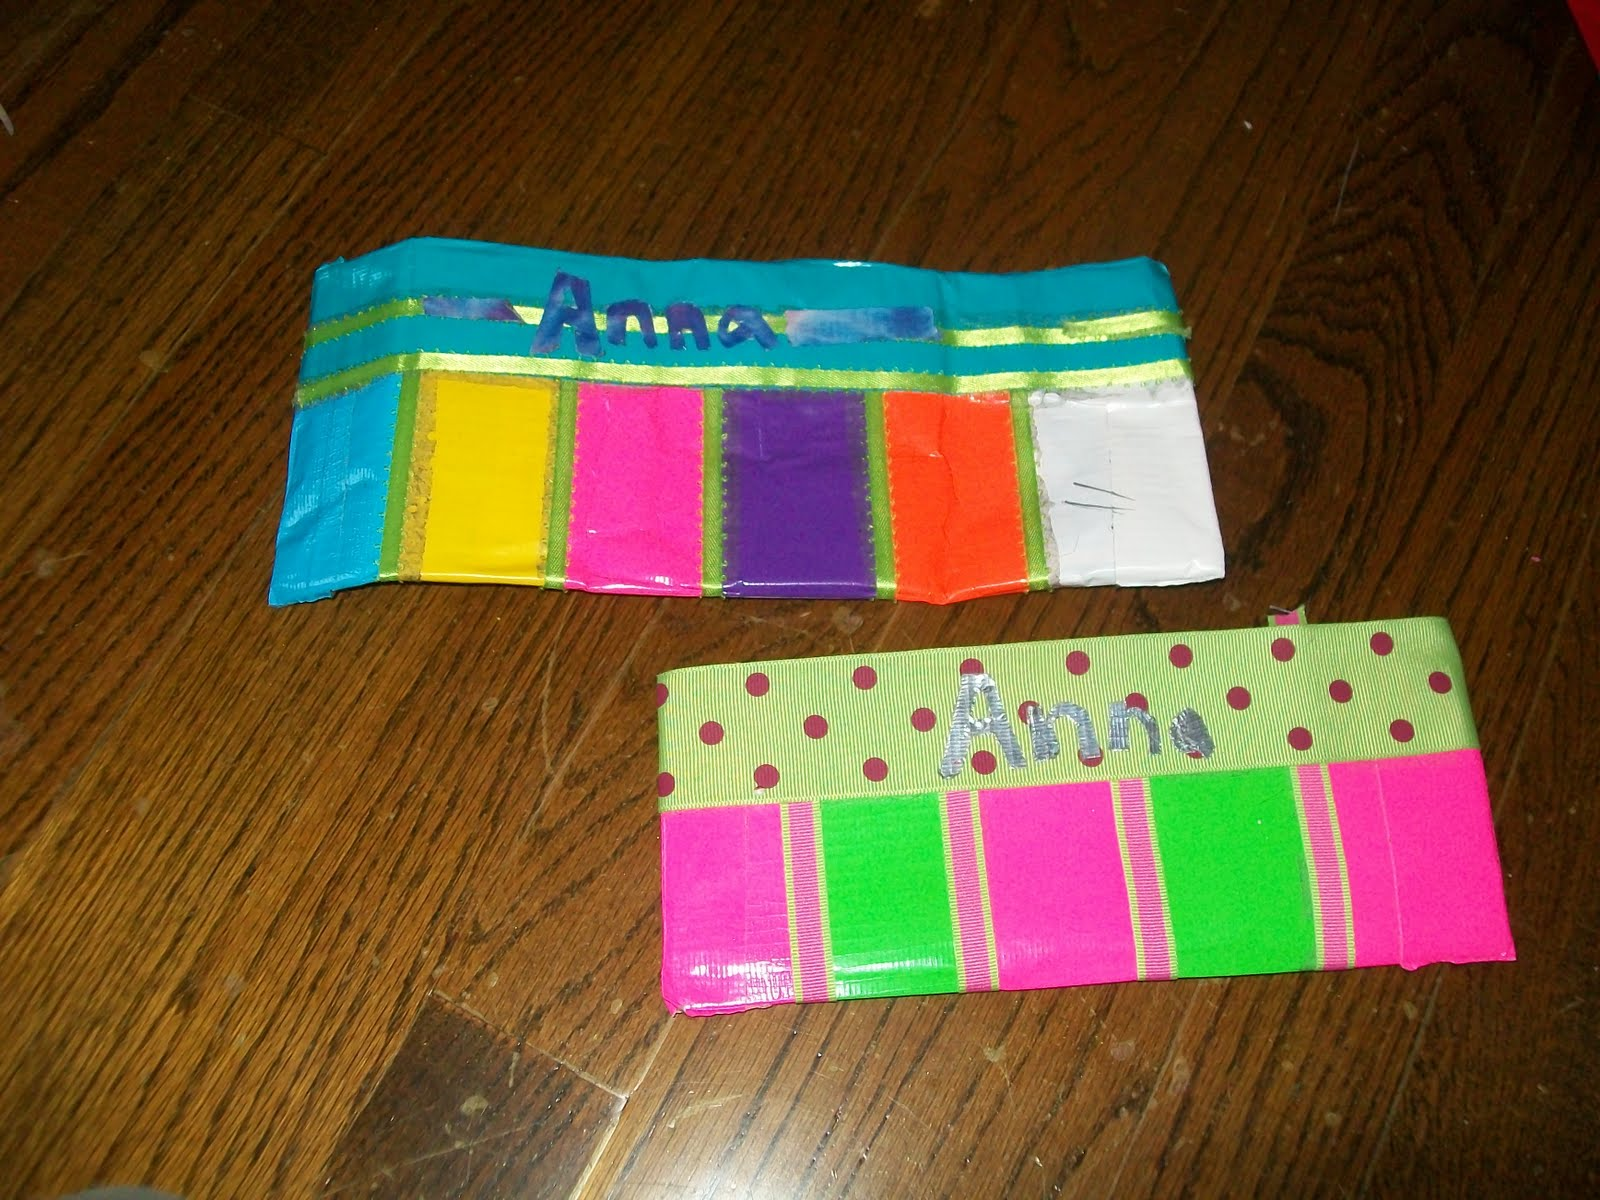 Malu's Cool Creations: My Duct Tape Creations |Duct Tape Creations